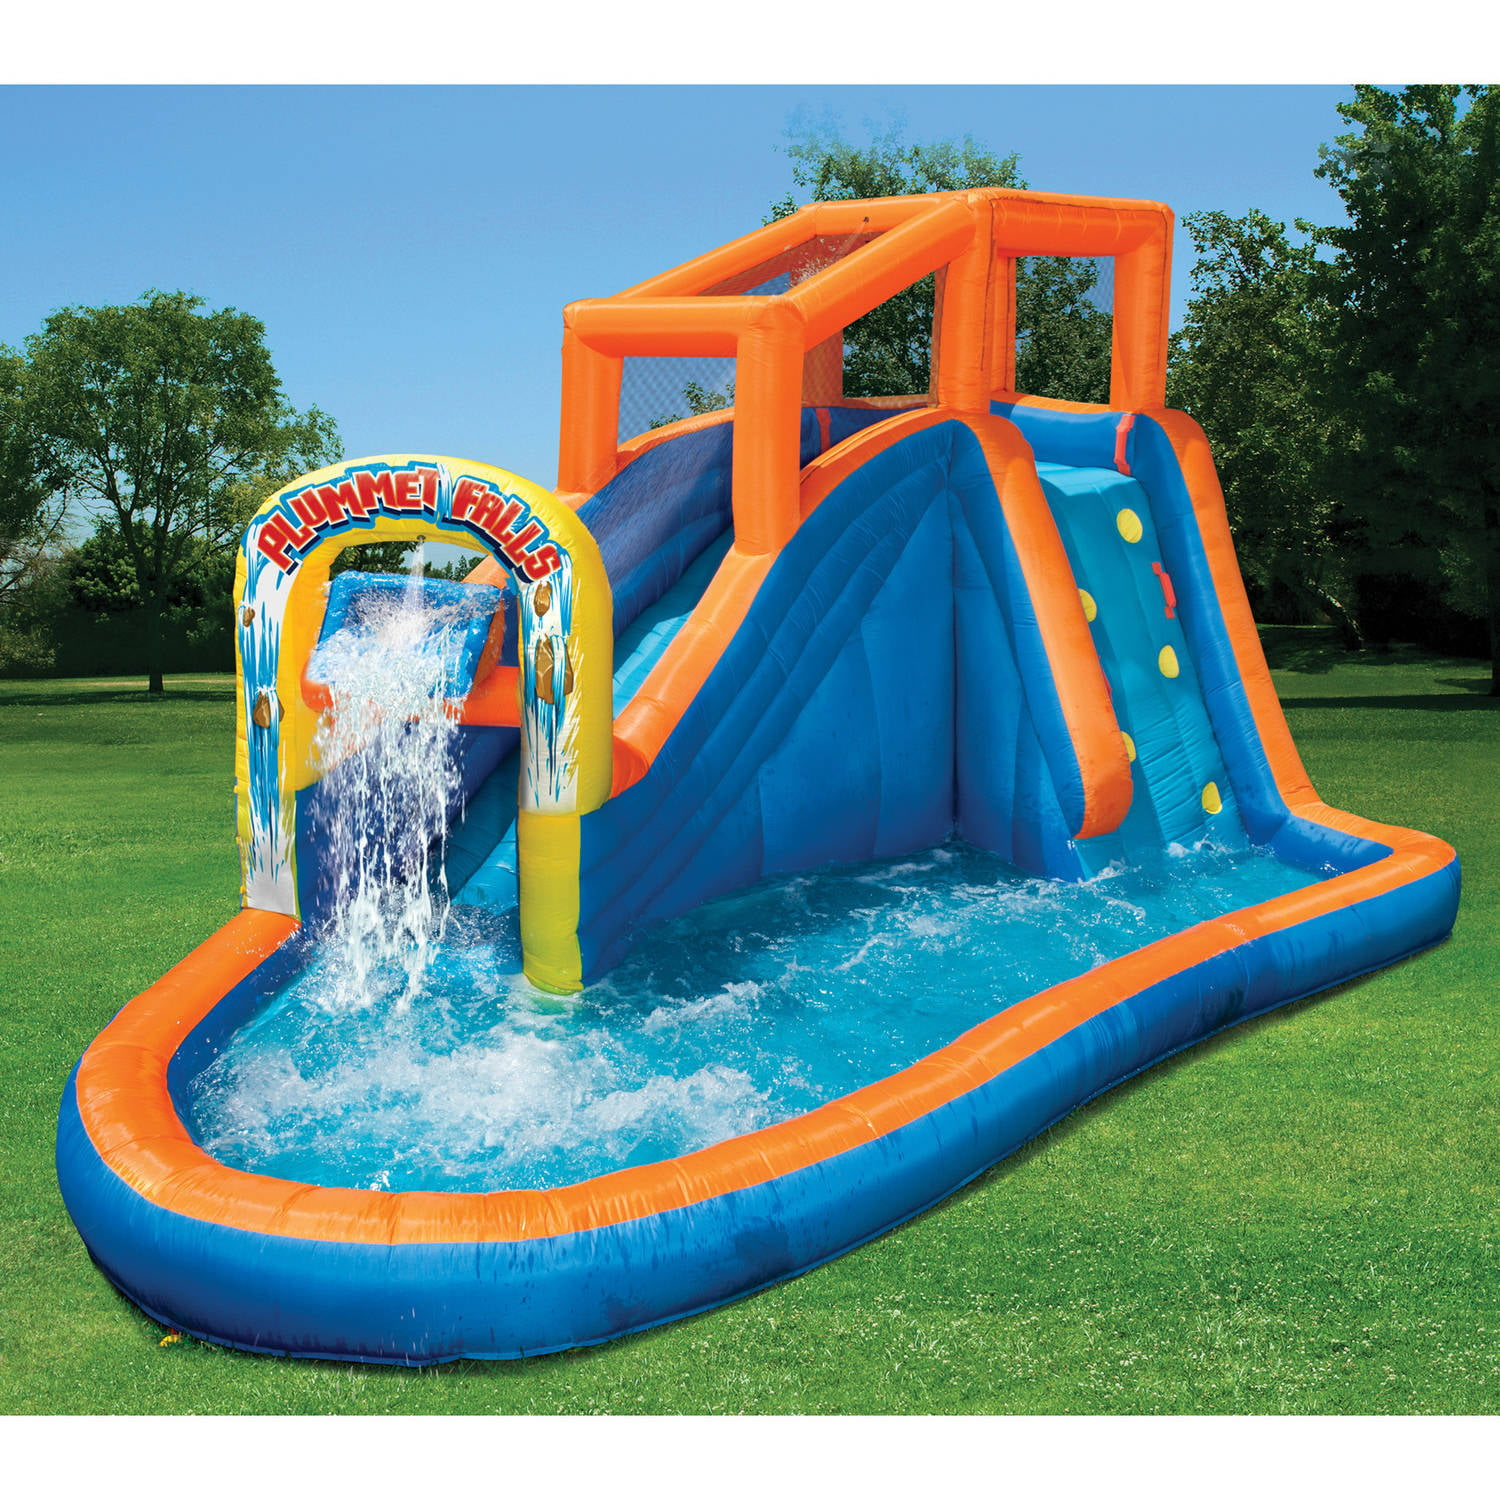 banzai plummet falls adventure water slide walmartcom - House Pools With Slides